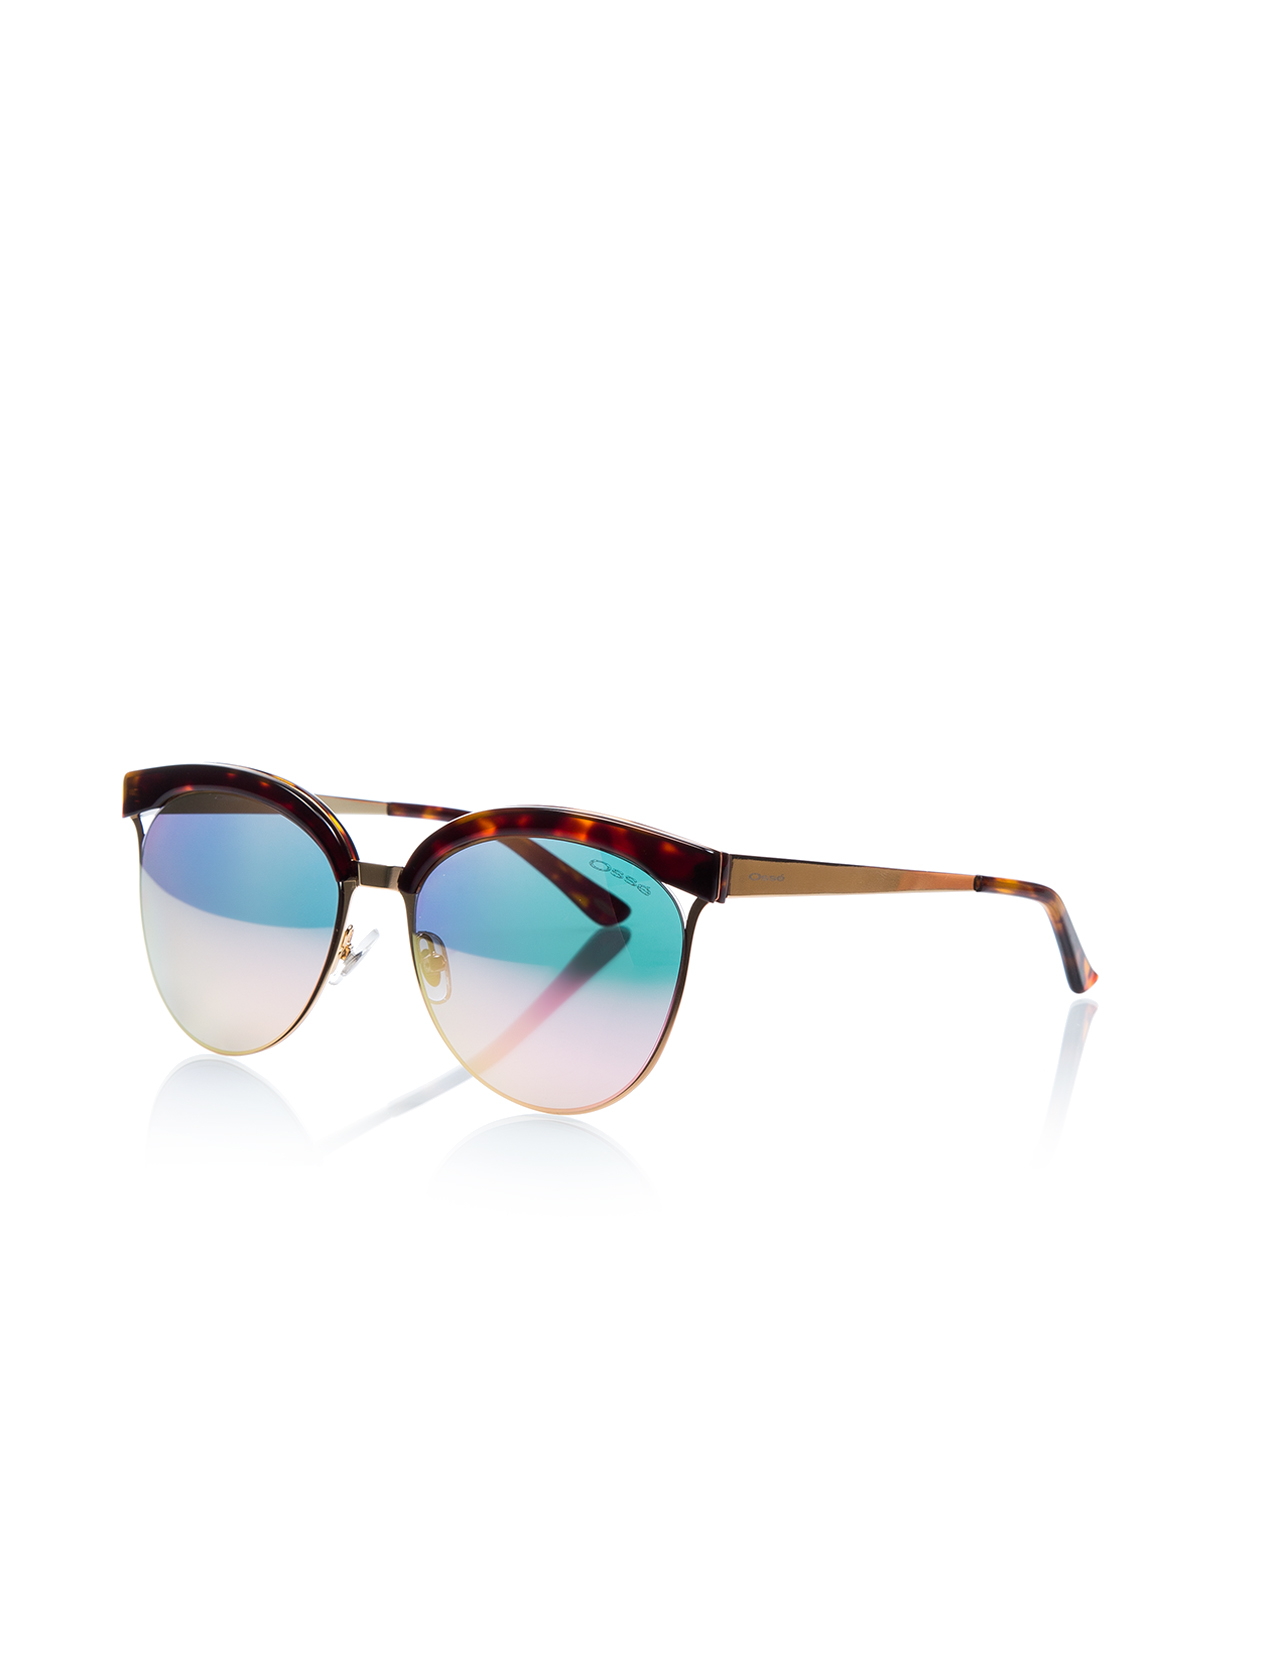 Women's sunglasses os 2664 02 clubmaster gold organic oval aval 55-18-145 osse